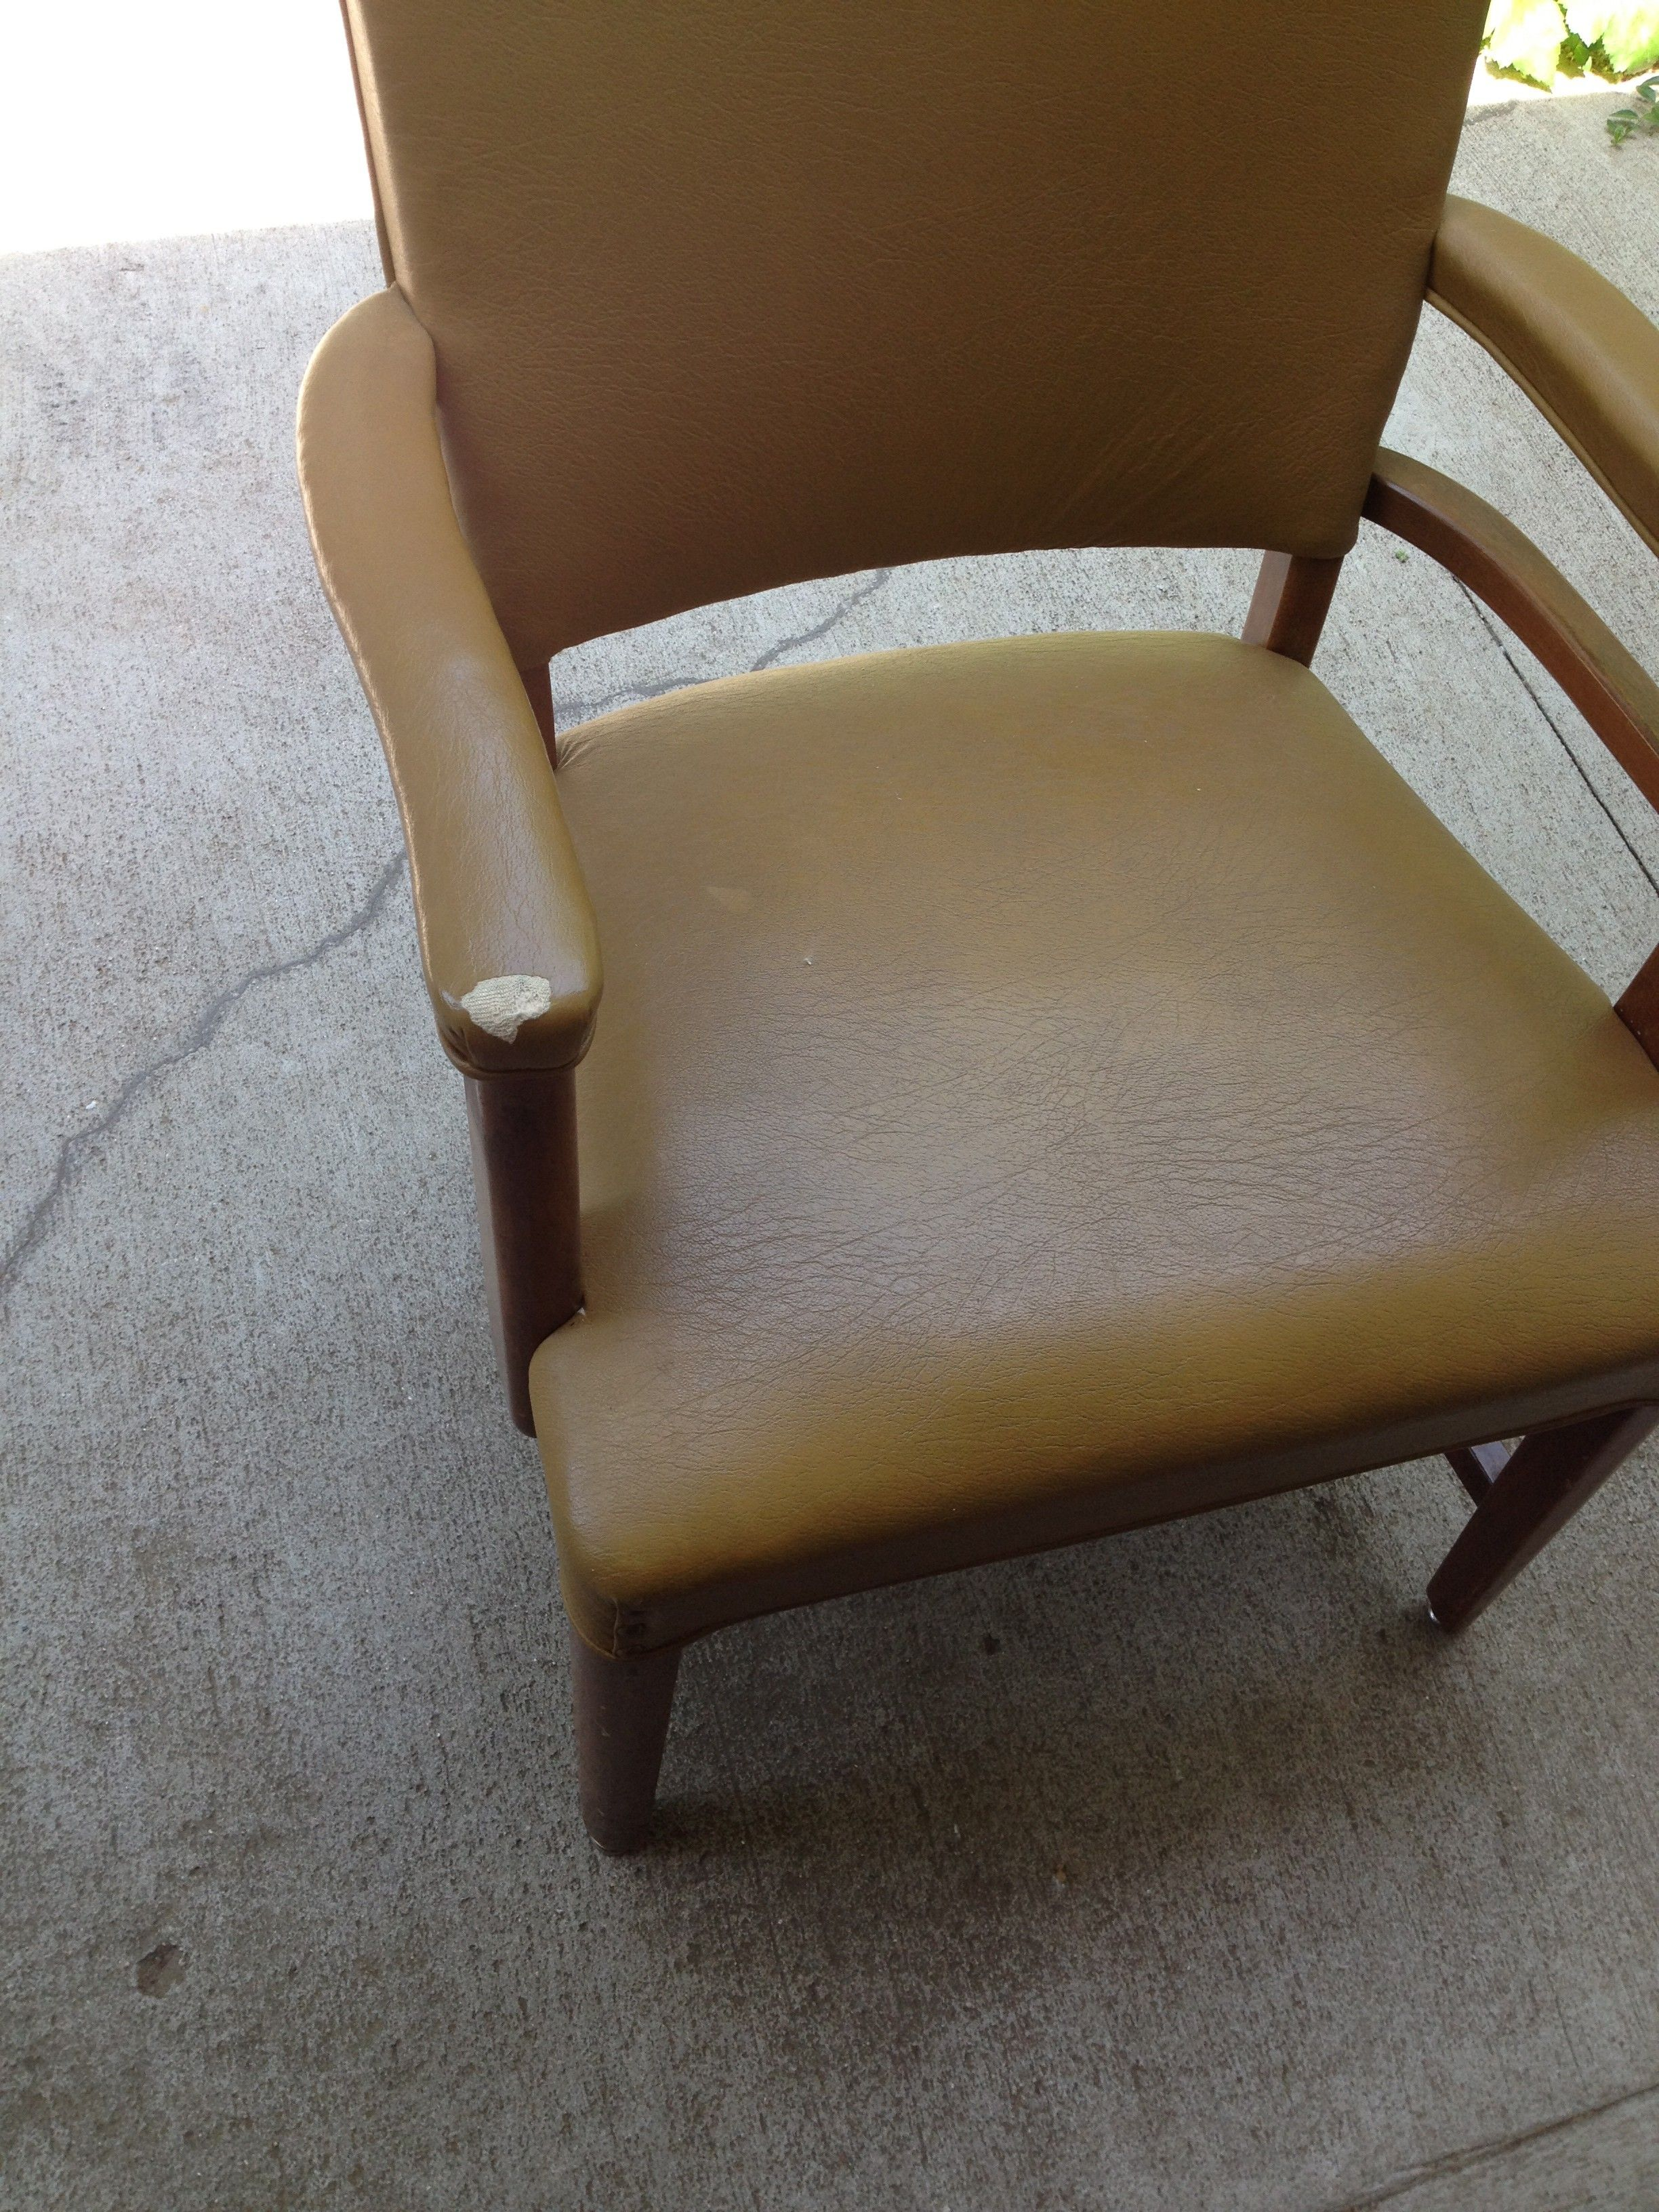 Companies That Reupholster Sofas Chicago Sofar Sounds Pin By Furnishly On Antique Furniture Chair